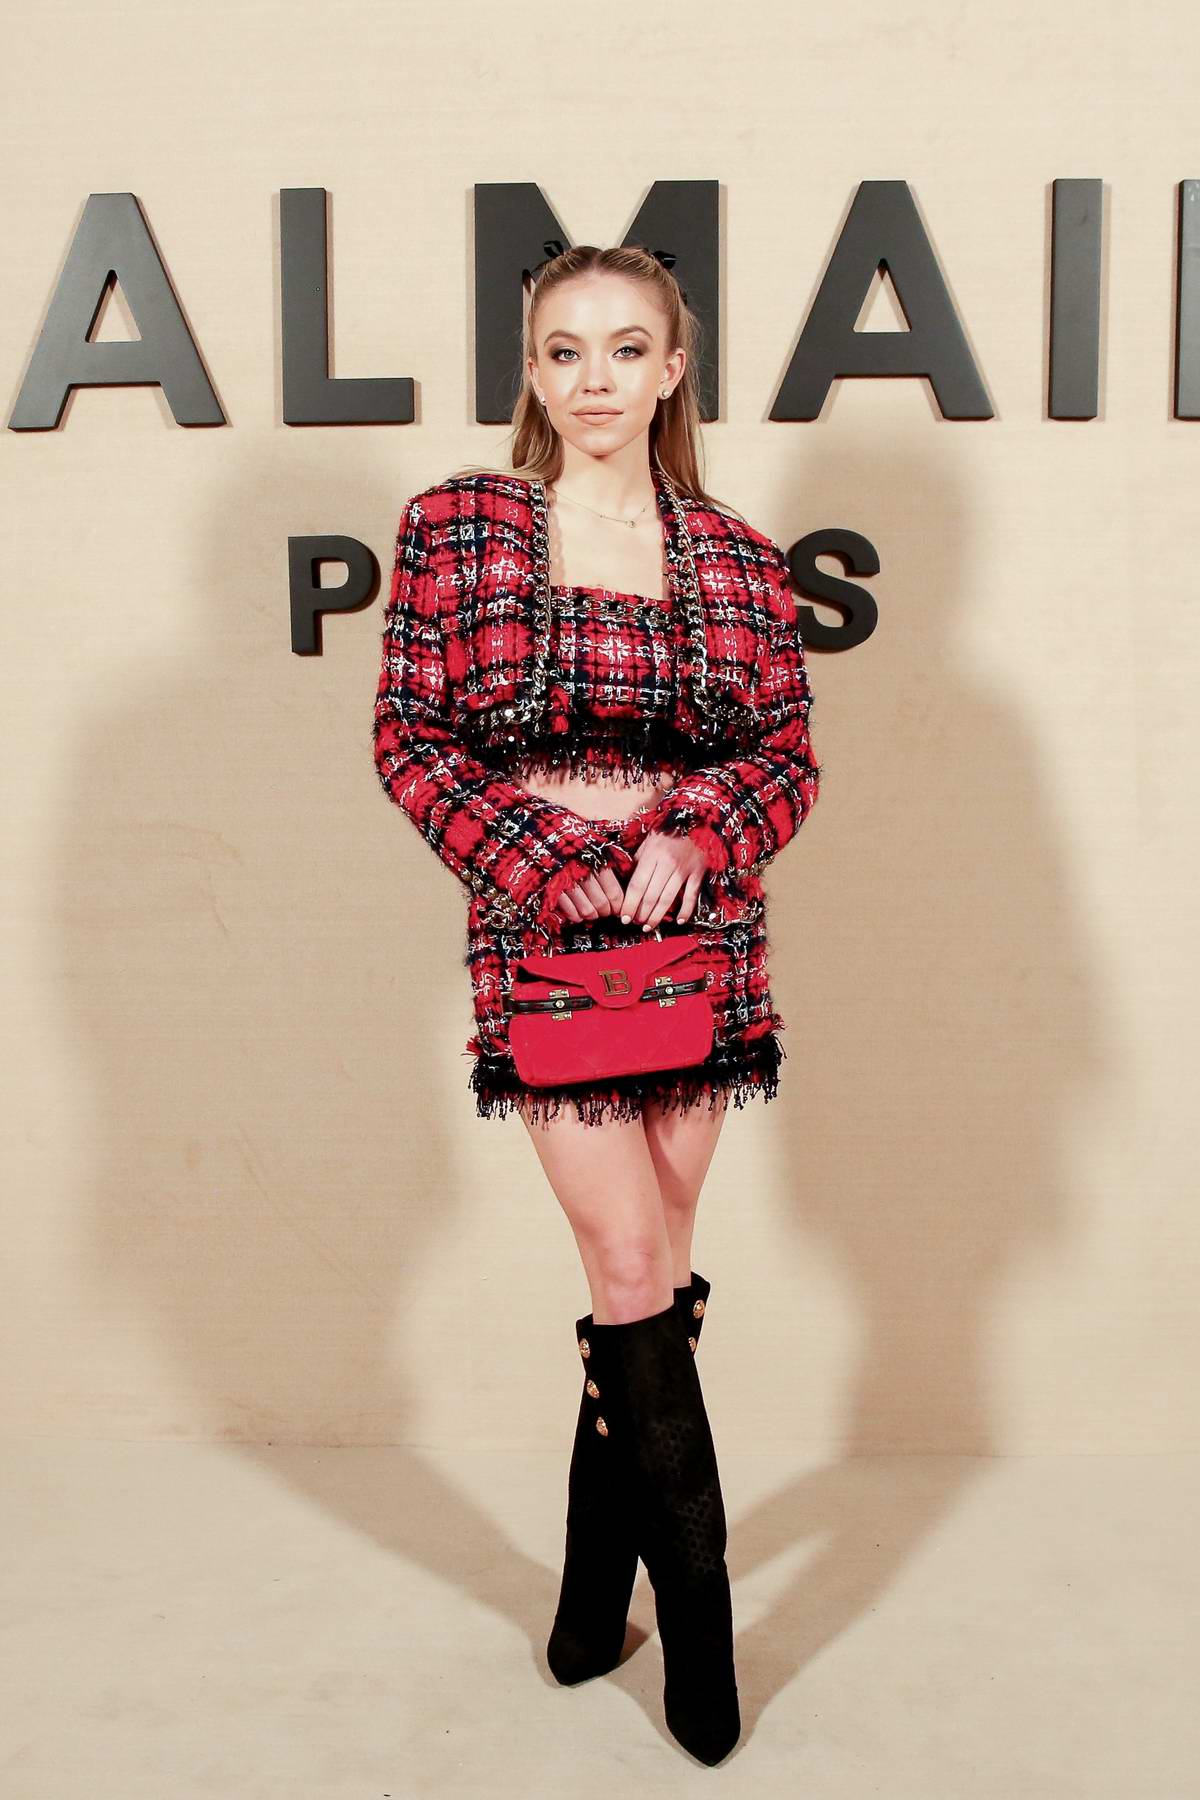 Sydney Sweeney attends the Balmain show, F/W 2020 during Paris Fashion Week in Paris, France